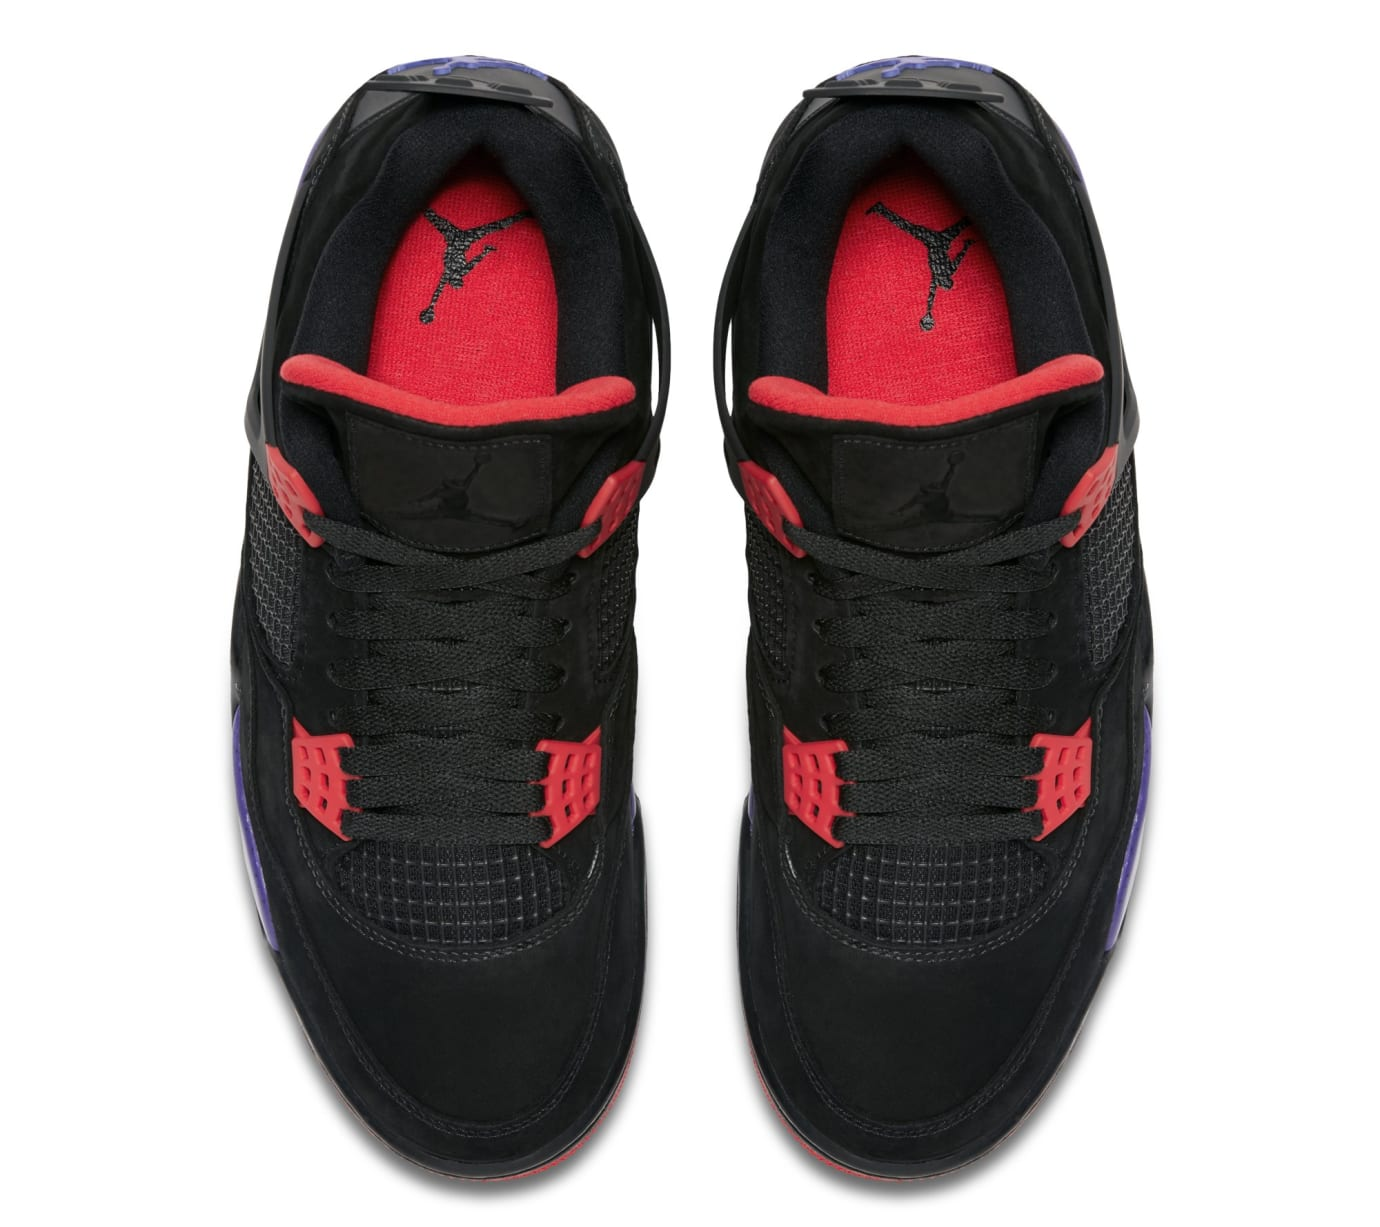 a5e5e6b76fa2 Air Jordan 4 Retro NRG  Black University Red Court Purple   AQ3816 ...